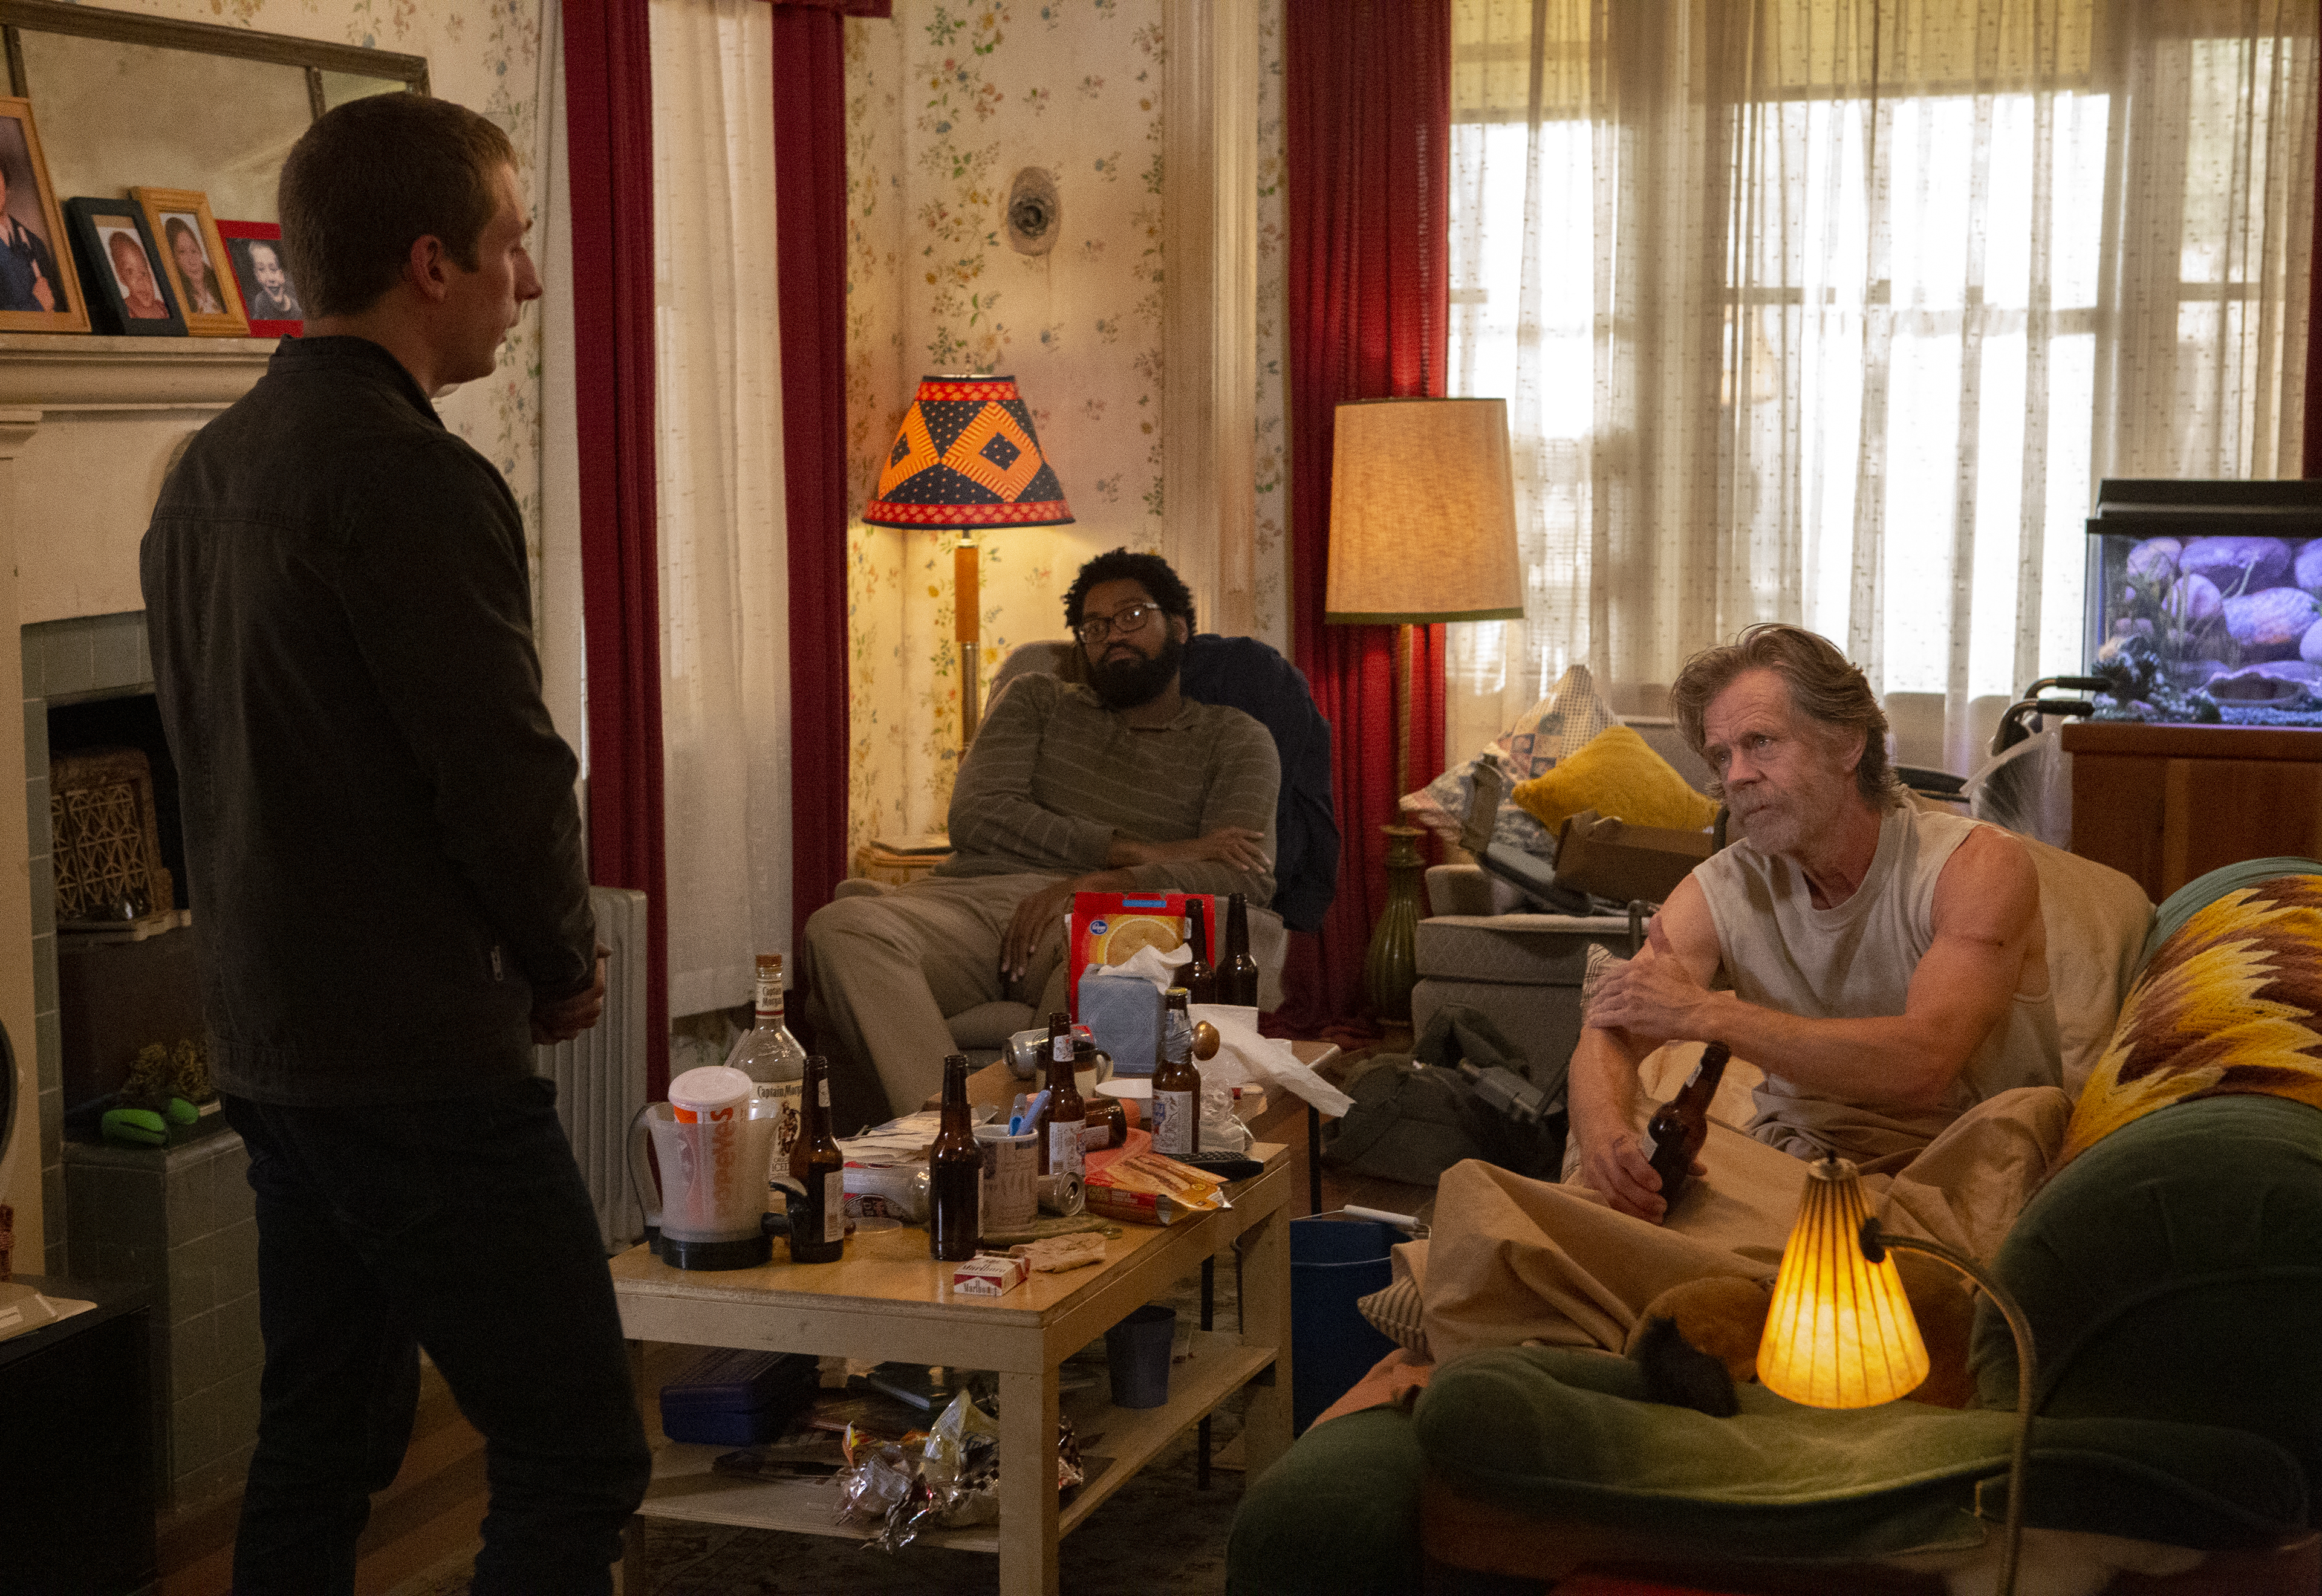 Jeremy Allen White as Lip and William H. Macy as Frank Gallagher in SHAMELESS